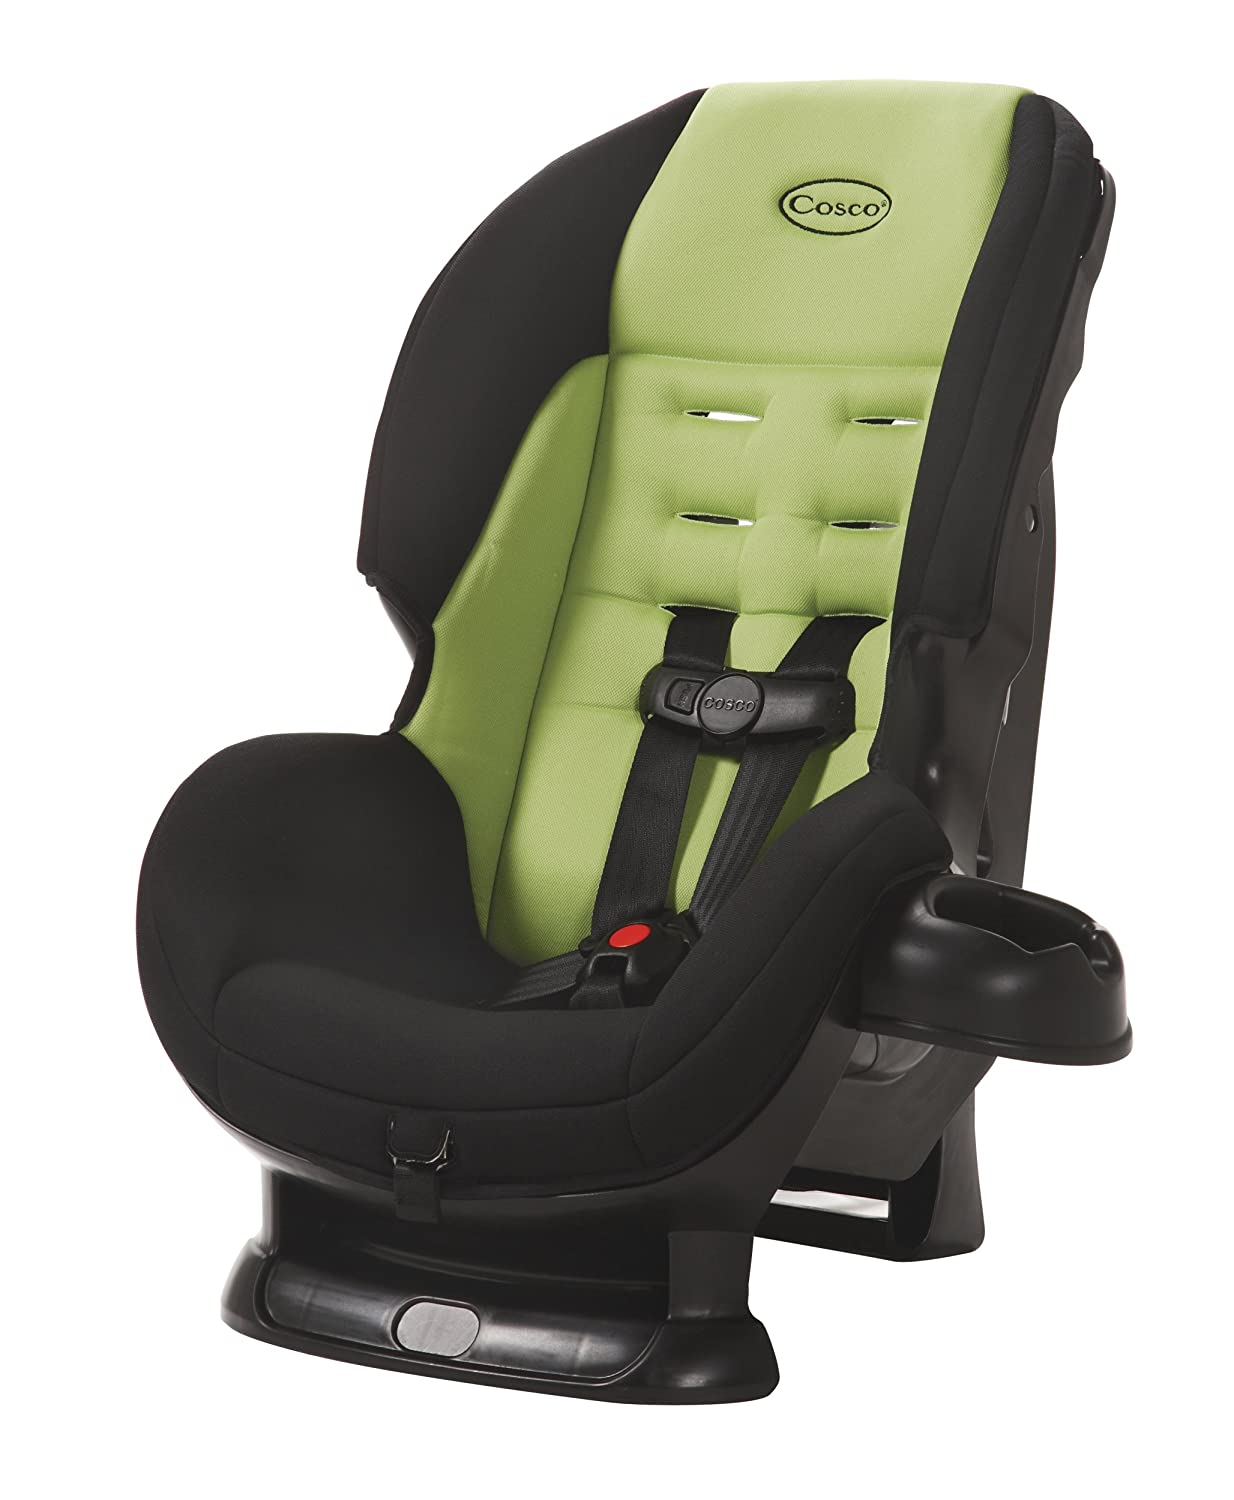 cosco baby car seat replacement parts. Black Bedroom Furniture Sets. Home Design Ideas